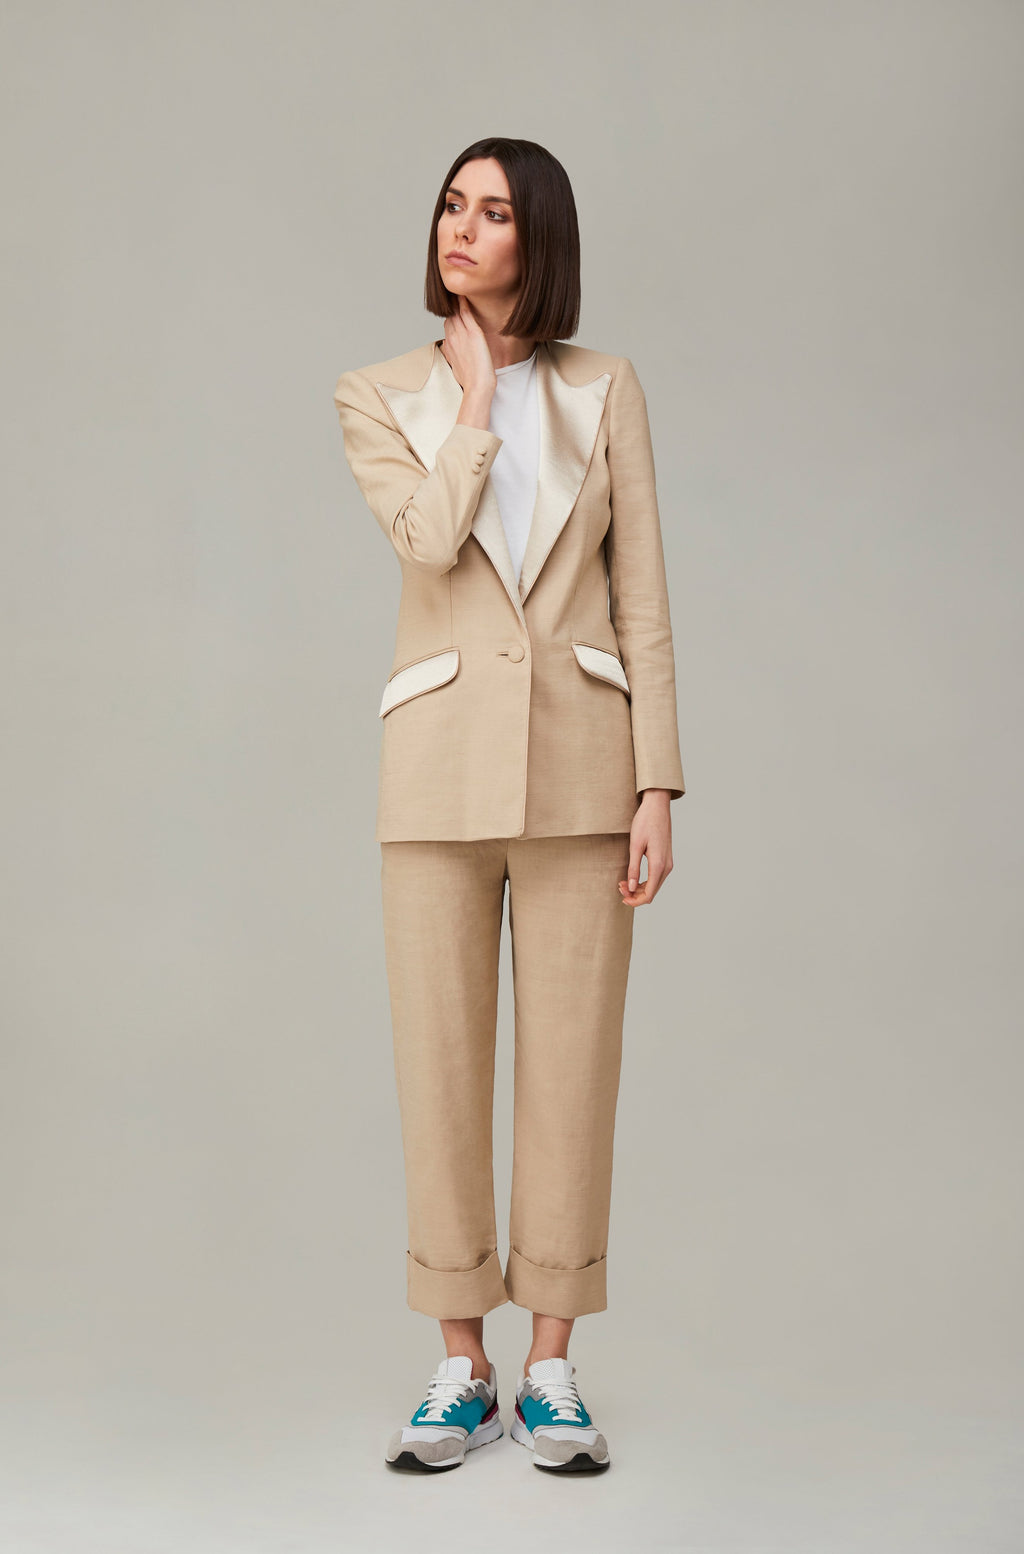 The Nude Linen Boyfriend Blazer